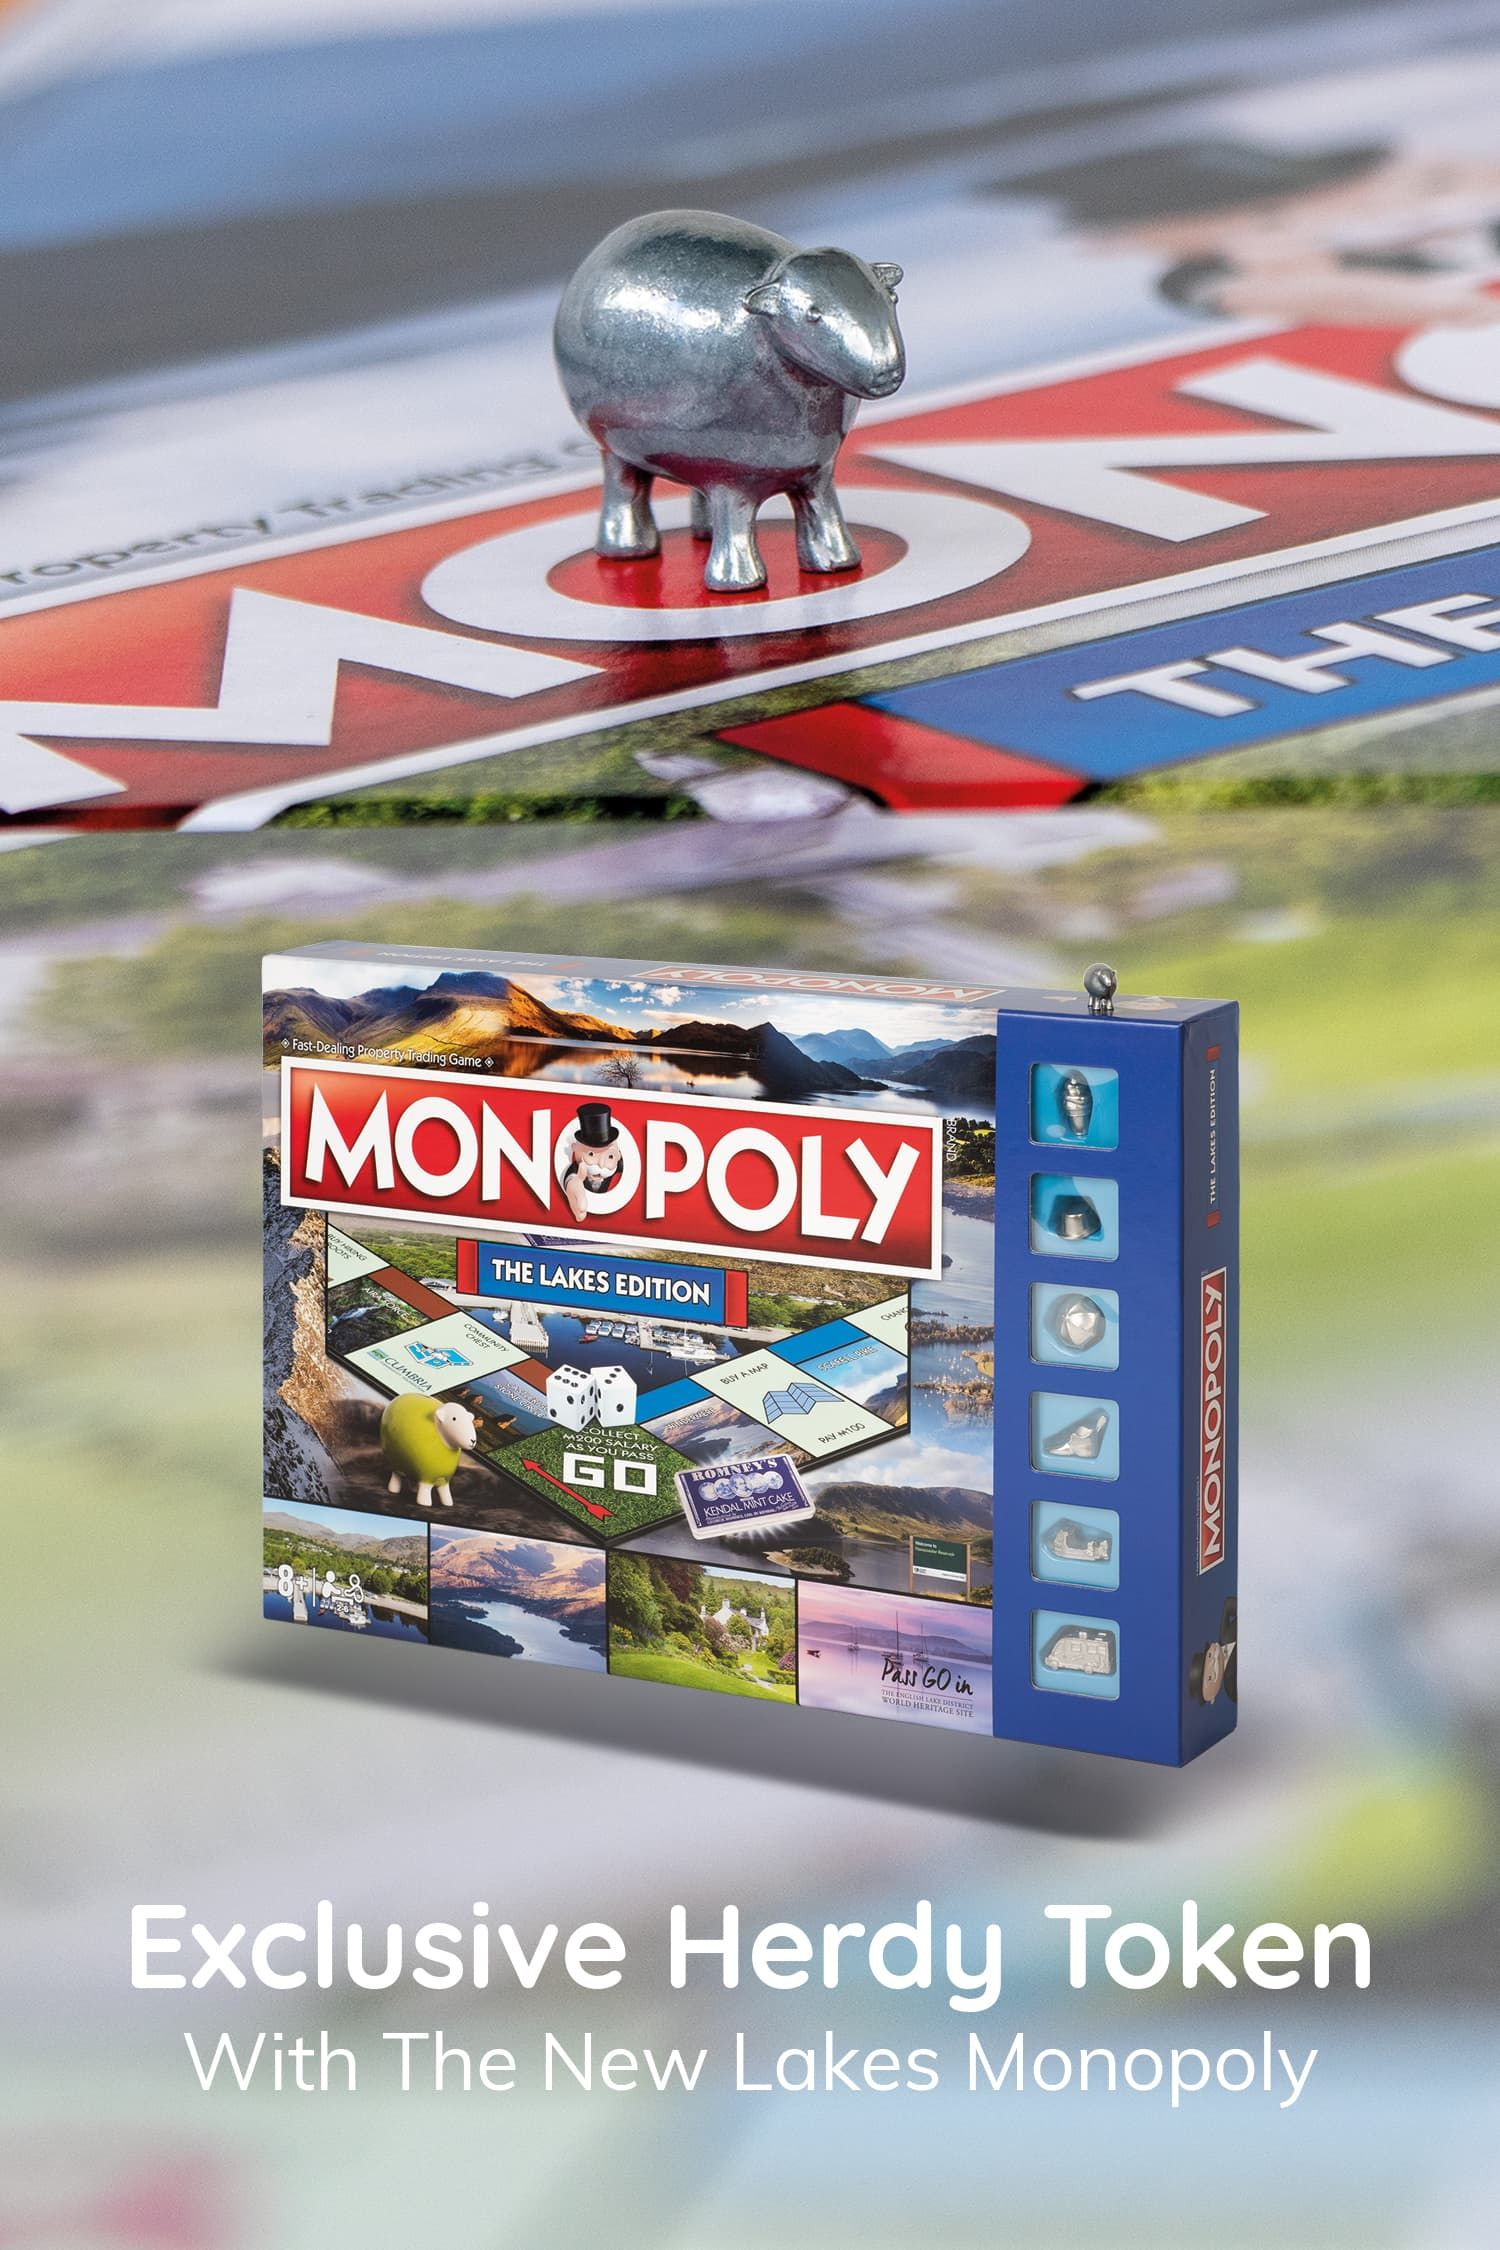 Monopoly Lakes Edition in 2020 Monopoly, Lake, Edition